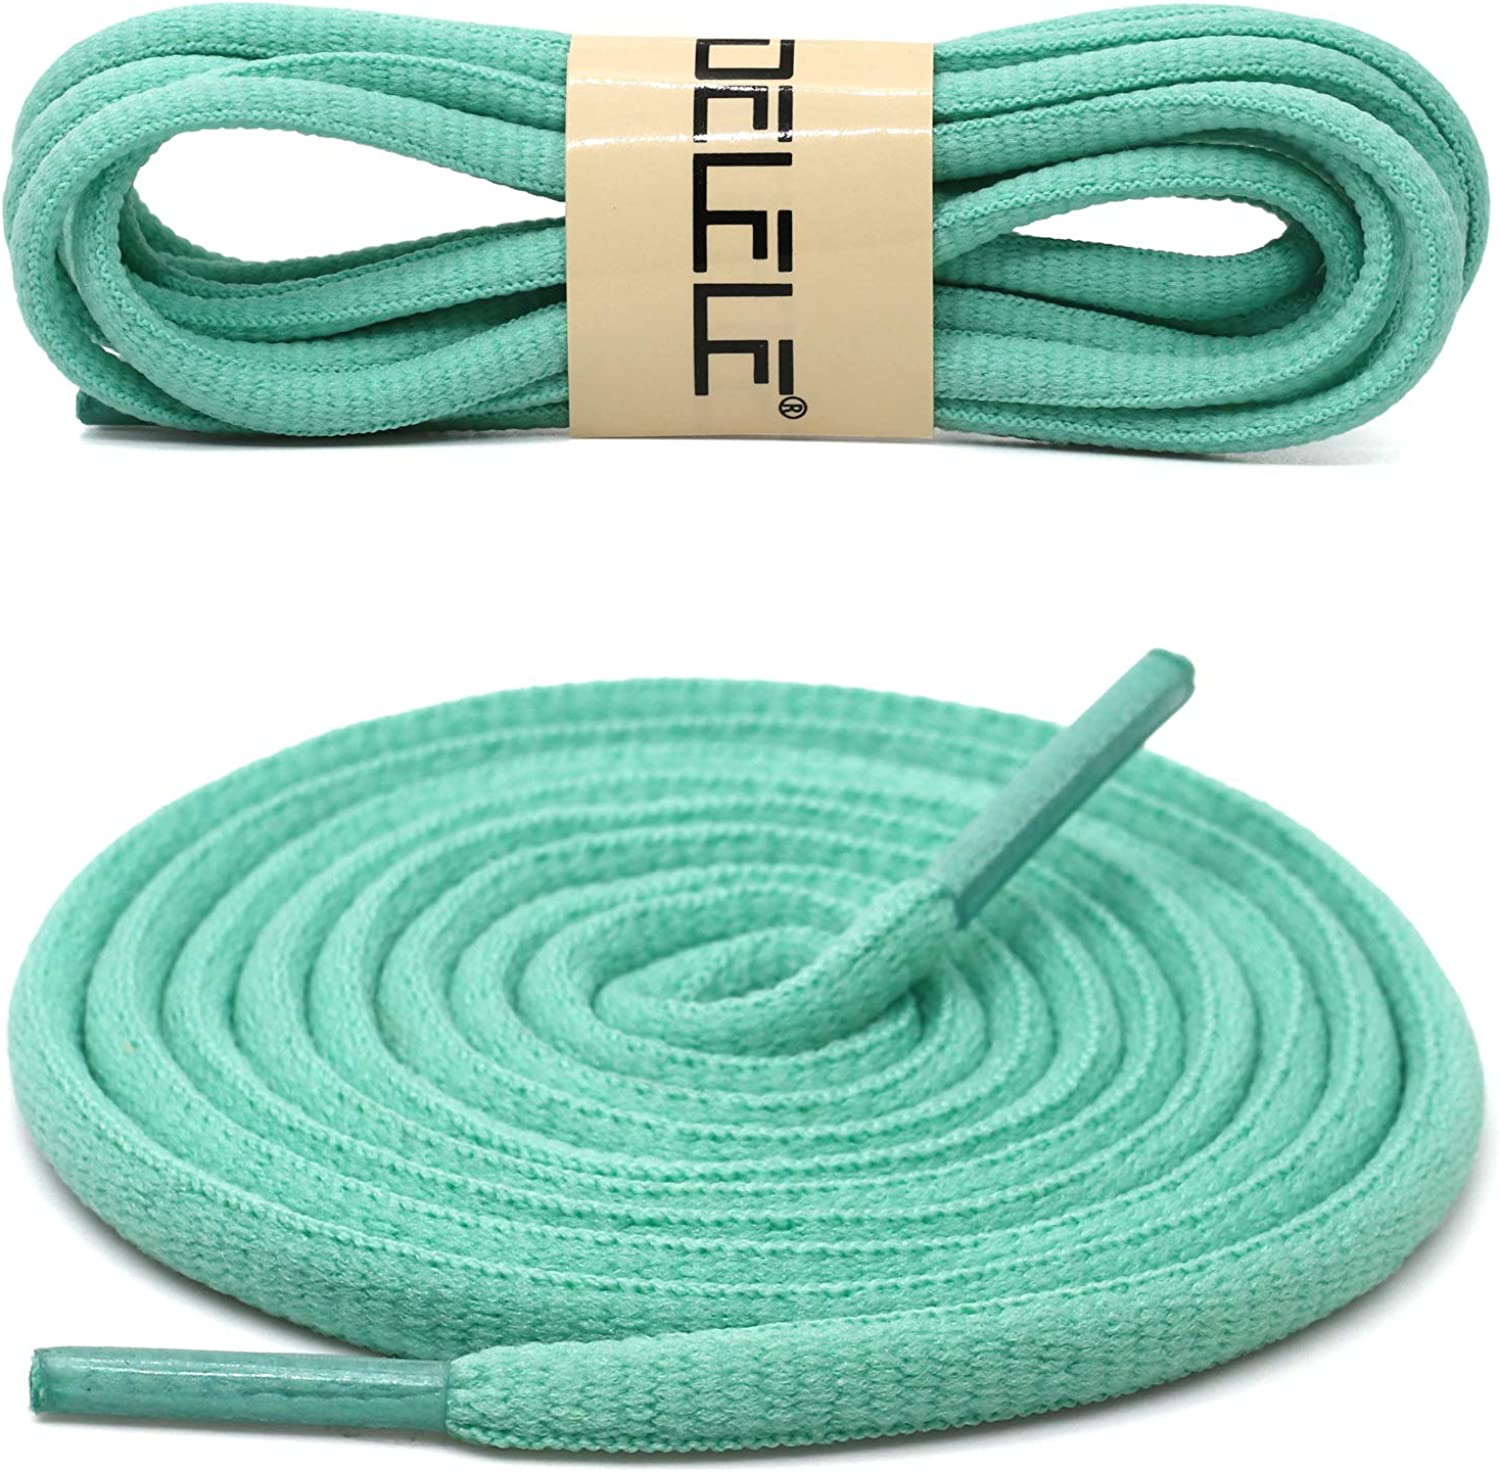 Oval Athletic Shoelaces Thick 4MM DELELE Half Round Shoe Laces Strings 2 Pair